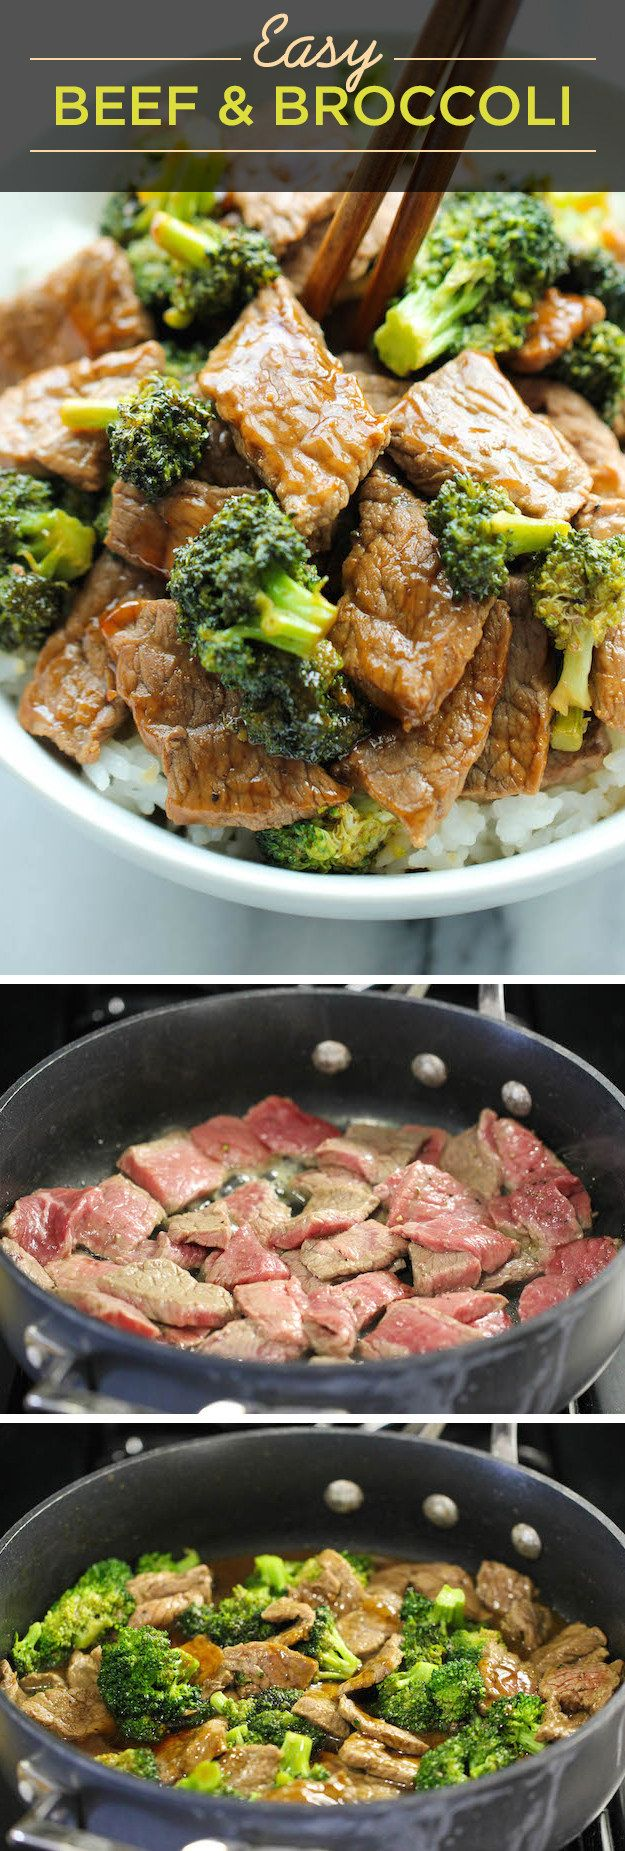 Easy Beef and Broccoli | Here's What You Should Eat For Dinner This Week